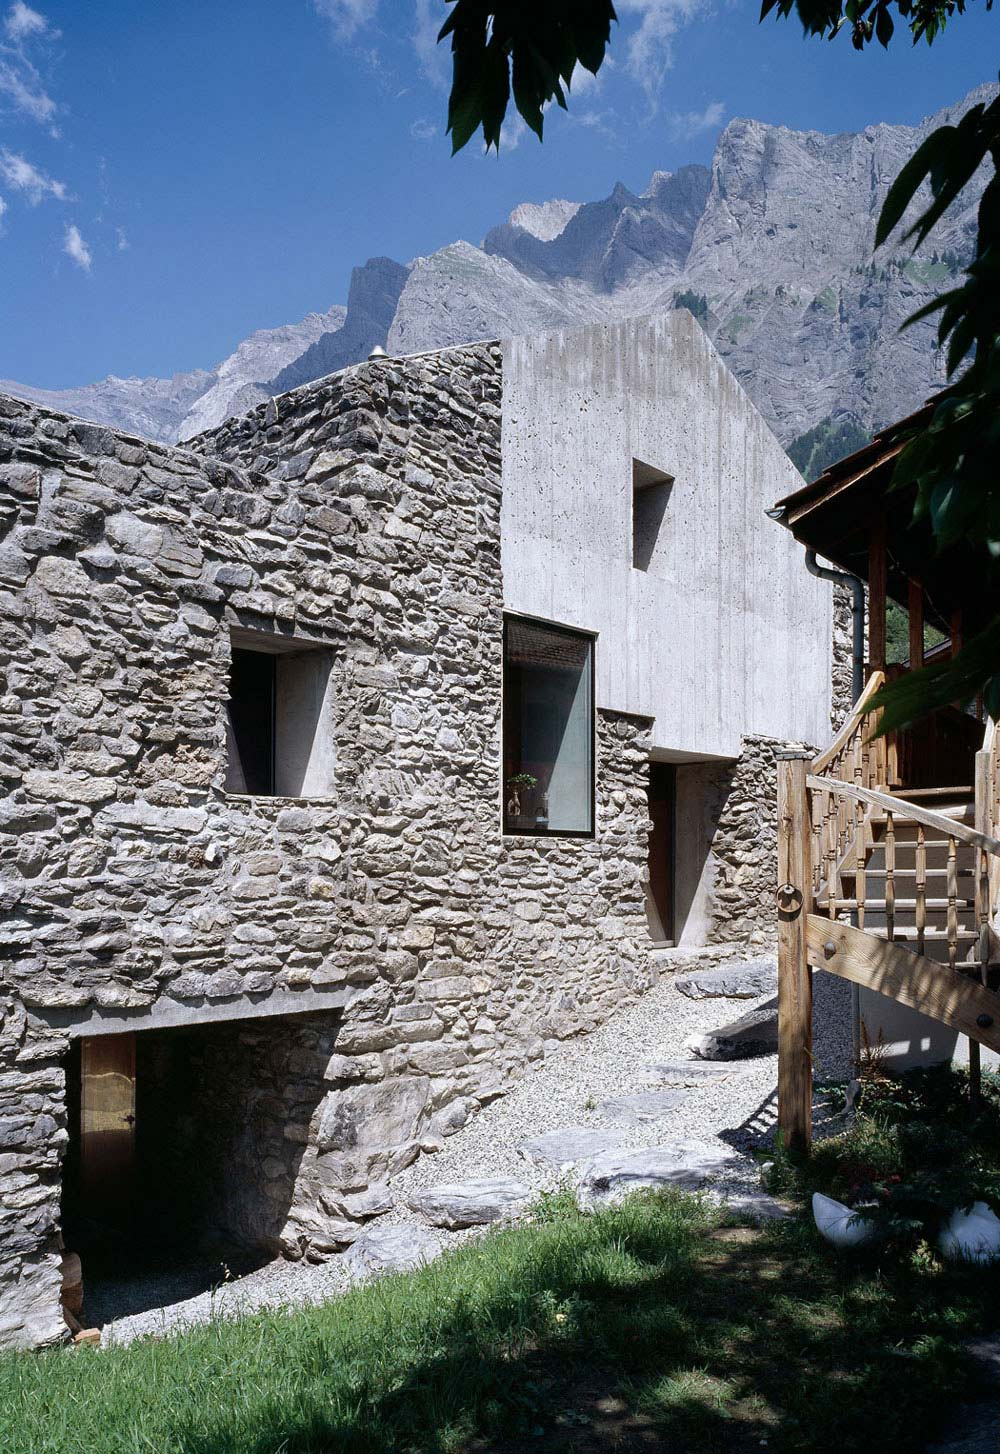 Concrete, Stone Walls, Renovation in Chamoson, Switzerland by Savioz Fabrizzi Architecte